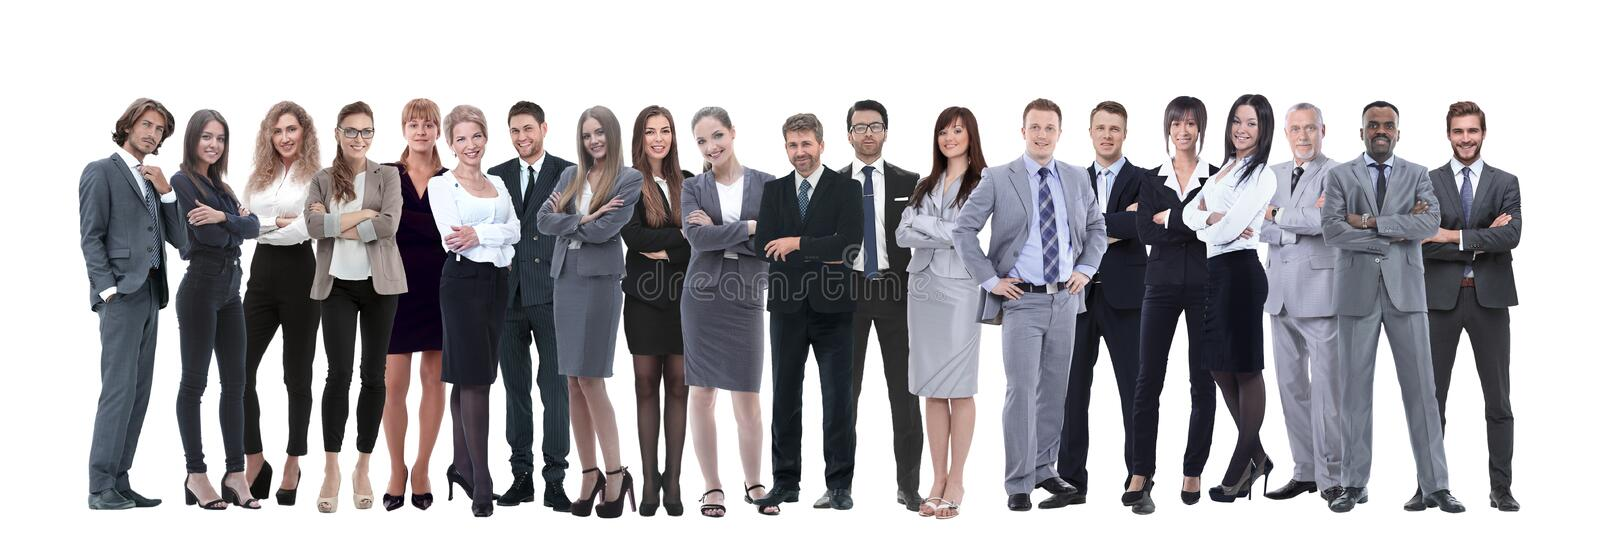 Young attractive business people - the elite business team. Business people standing in row over white background stock photography